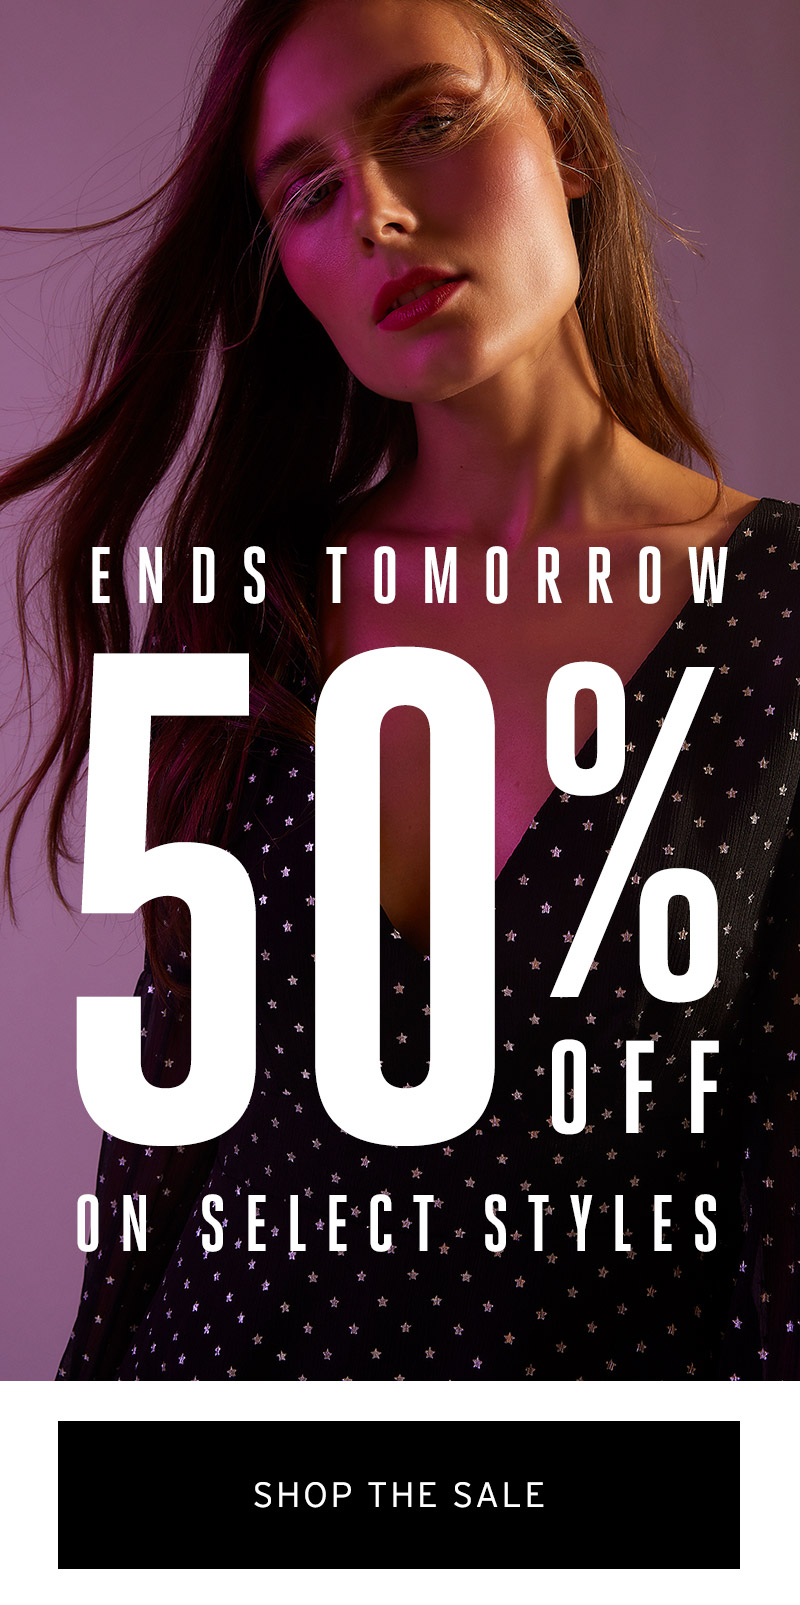 Ends tomorrow 50% off on select styles. Shop the sale.